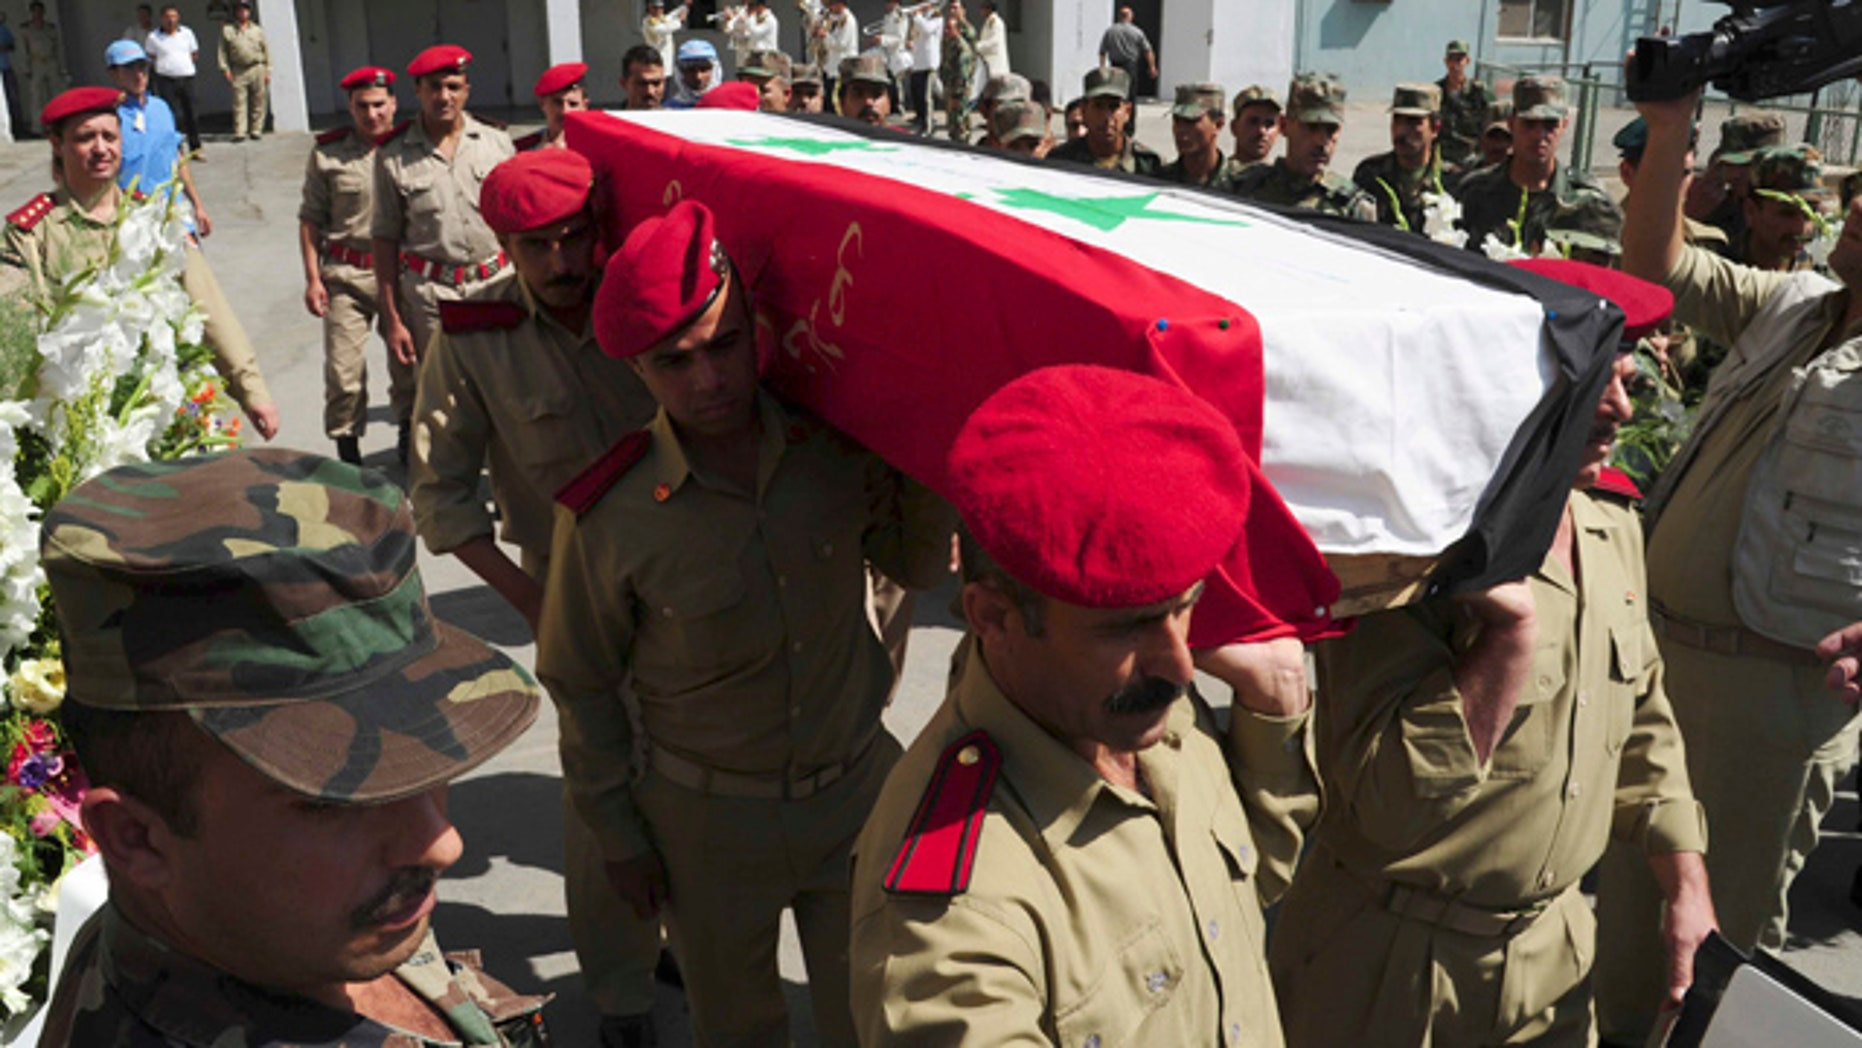 July 6: In this photo released by the Syrian official news agency SANA, Syrian soldiers carry the coffin of a comrade who was killed in recent violence in the country during his funeral procession at a hospital in Damascus, Syria.